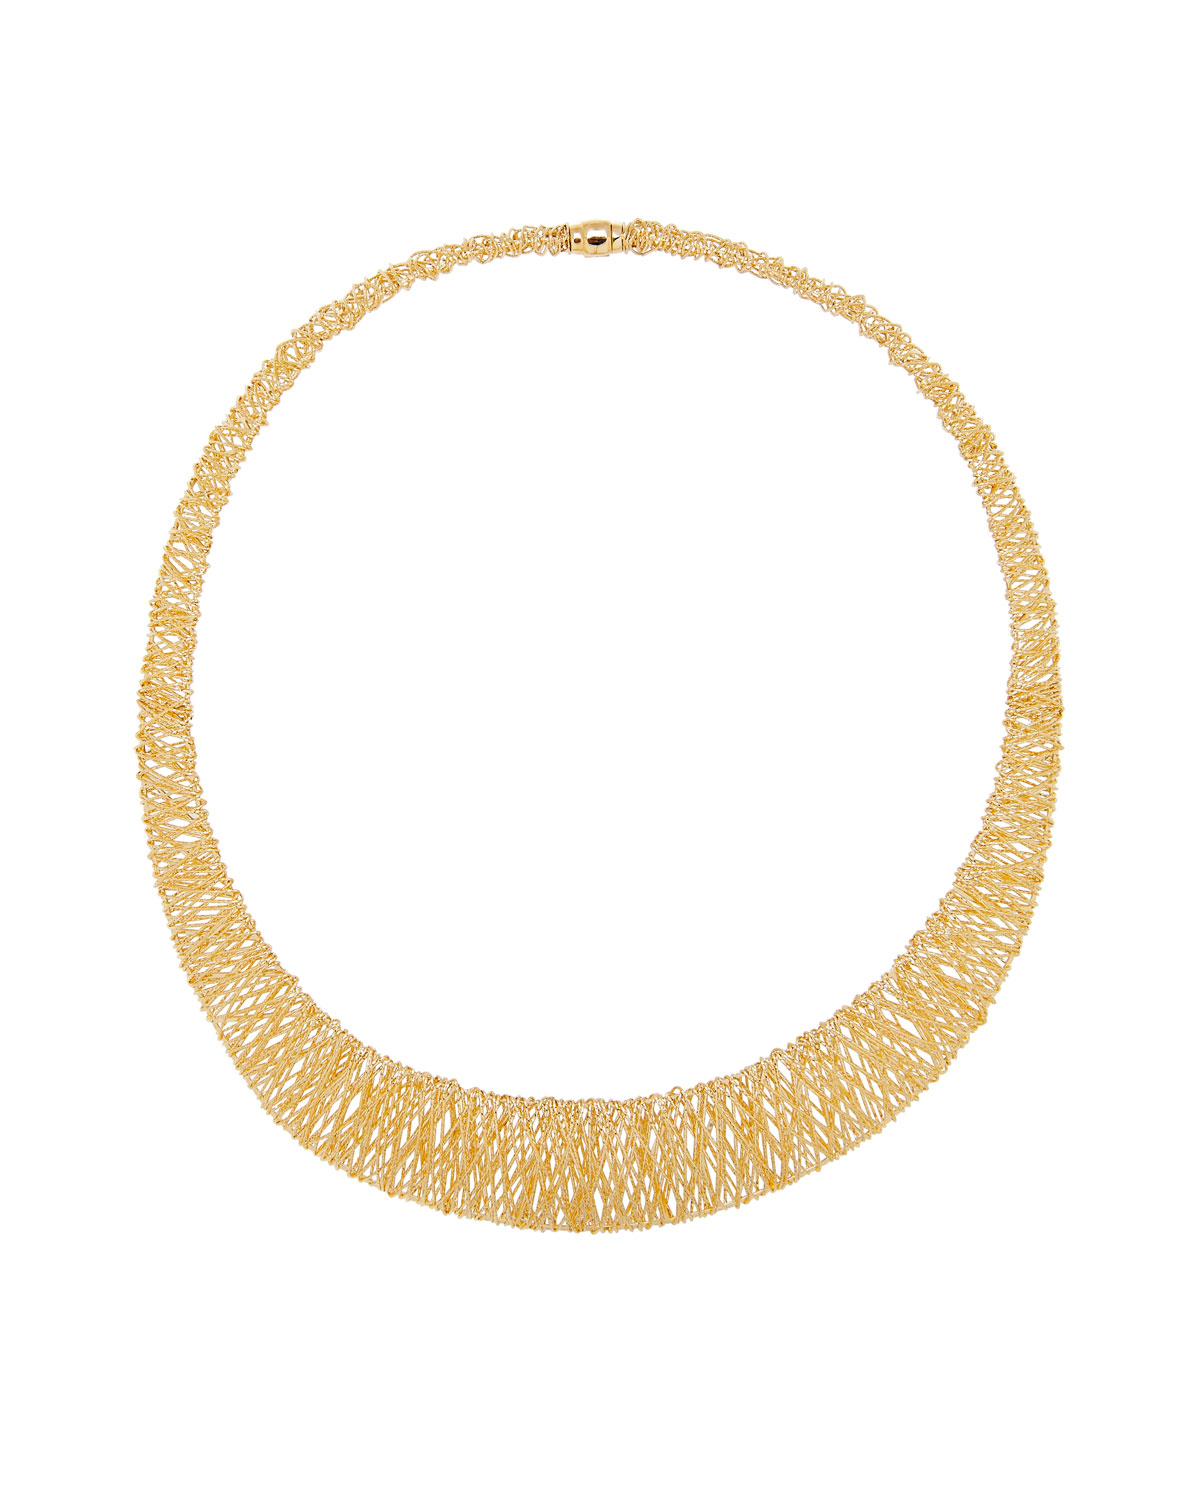 Piazza Duomo 18K Gold Graduated Mesh Collar Necklace